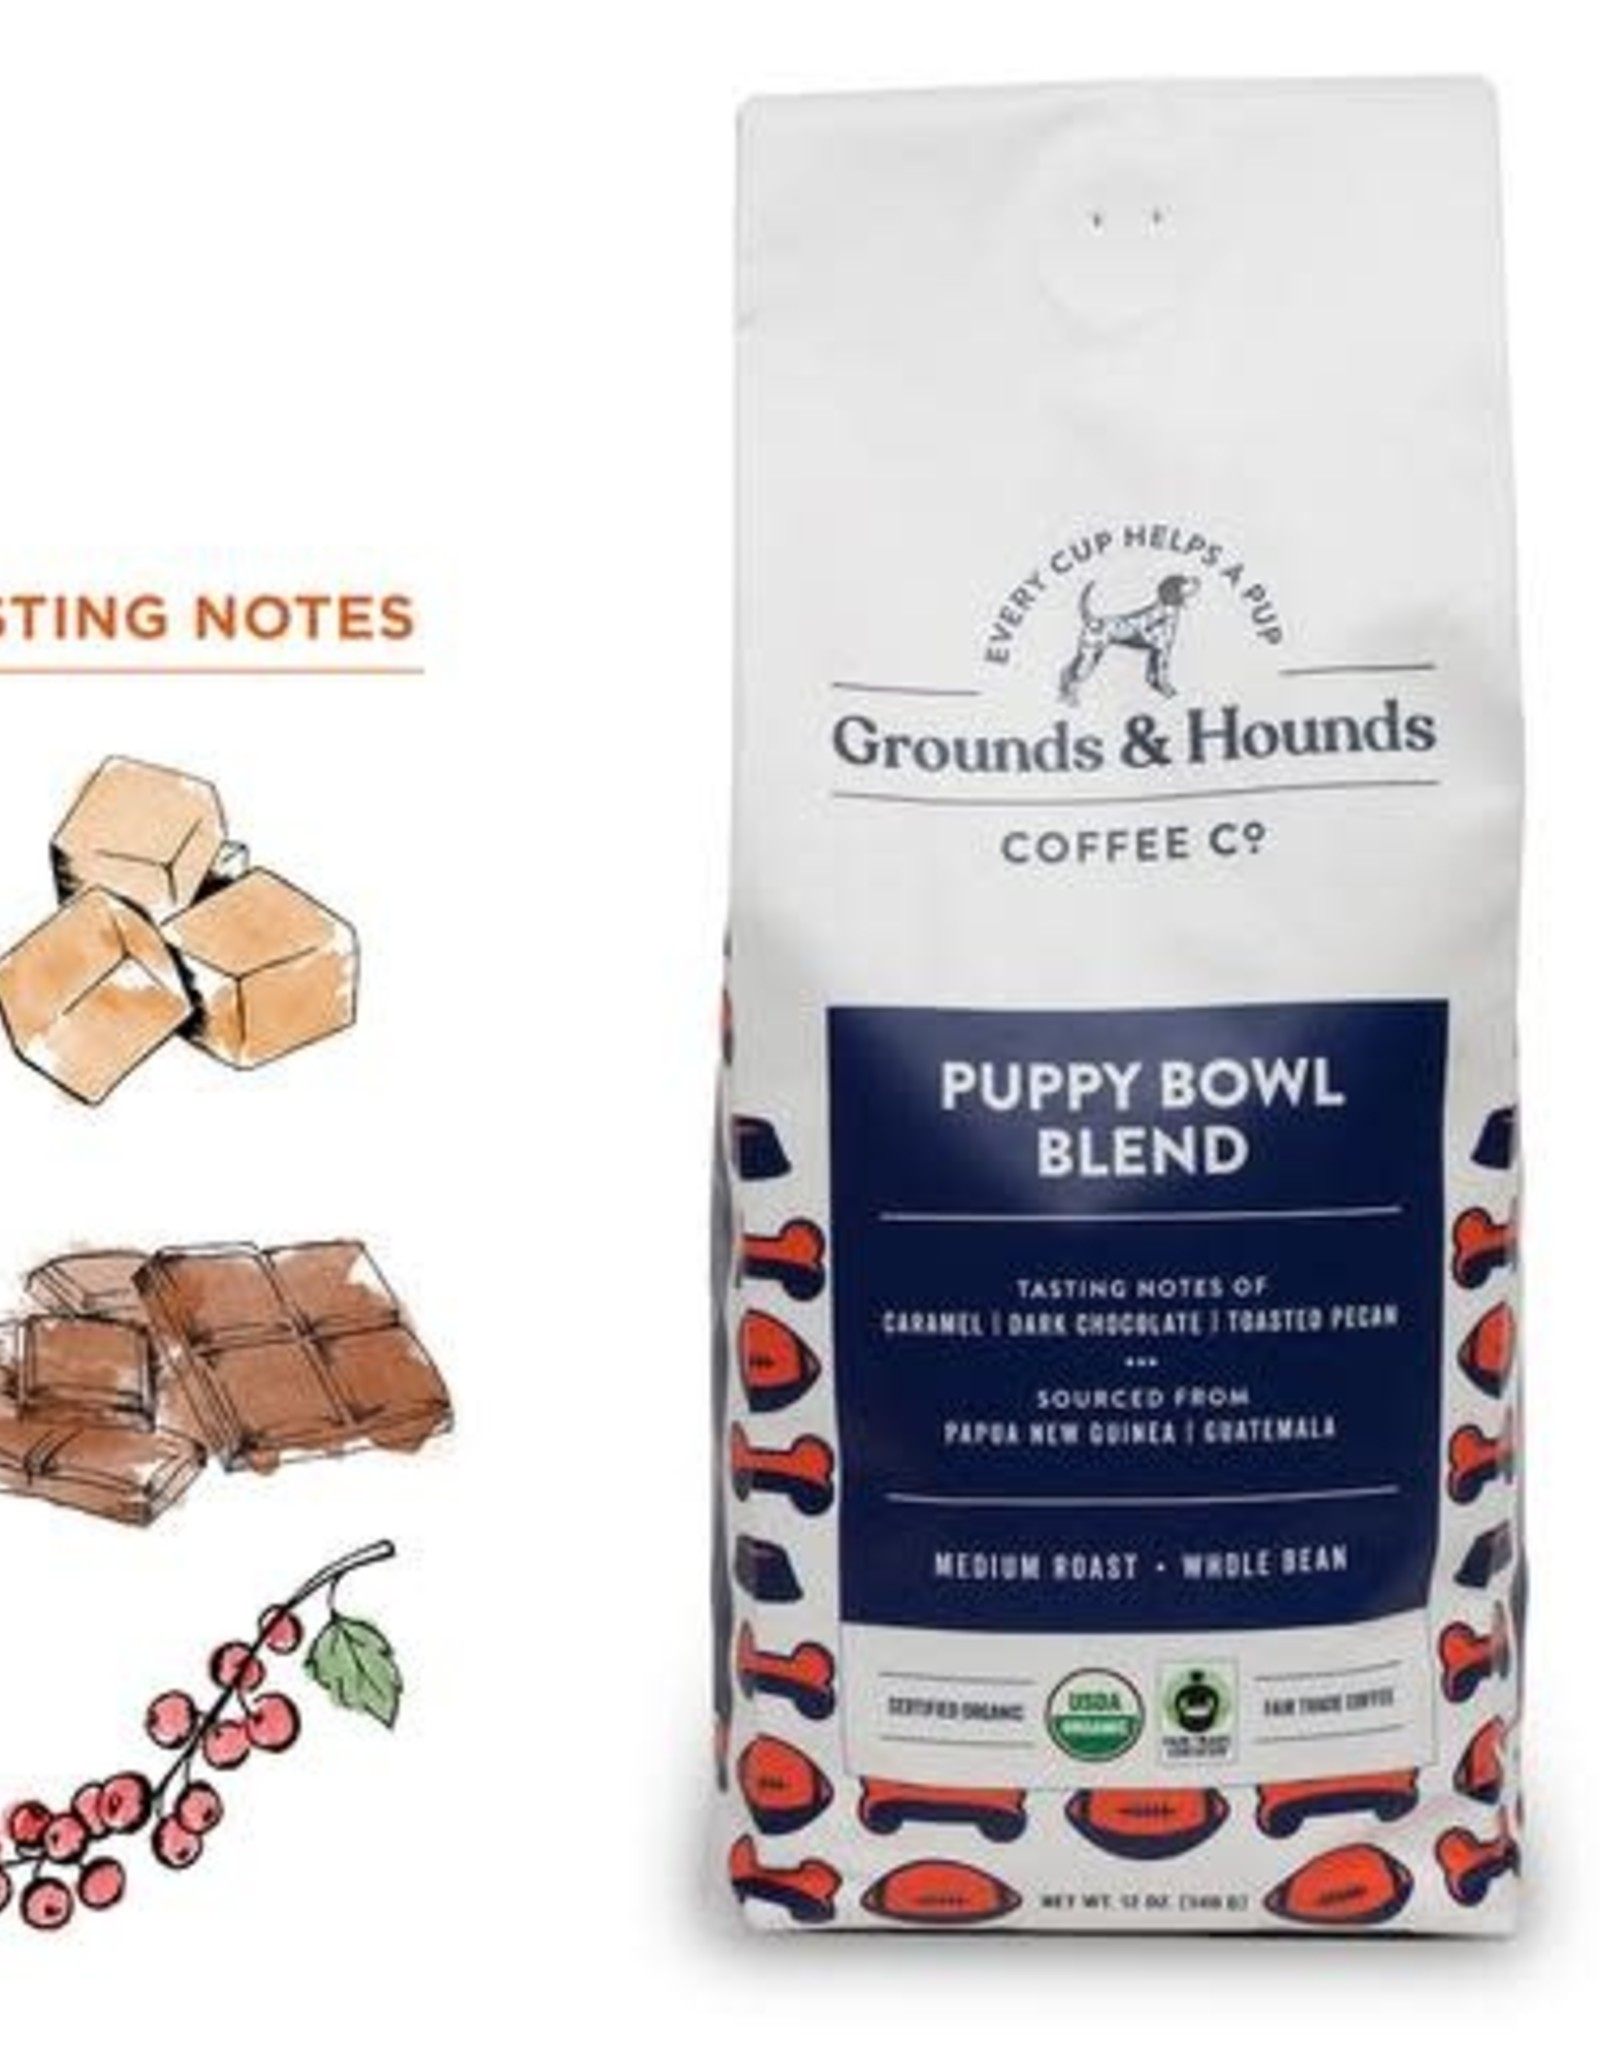 Grounds & Hounds Whole Bean Coffee Puppy Bowl